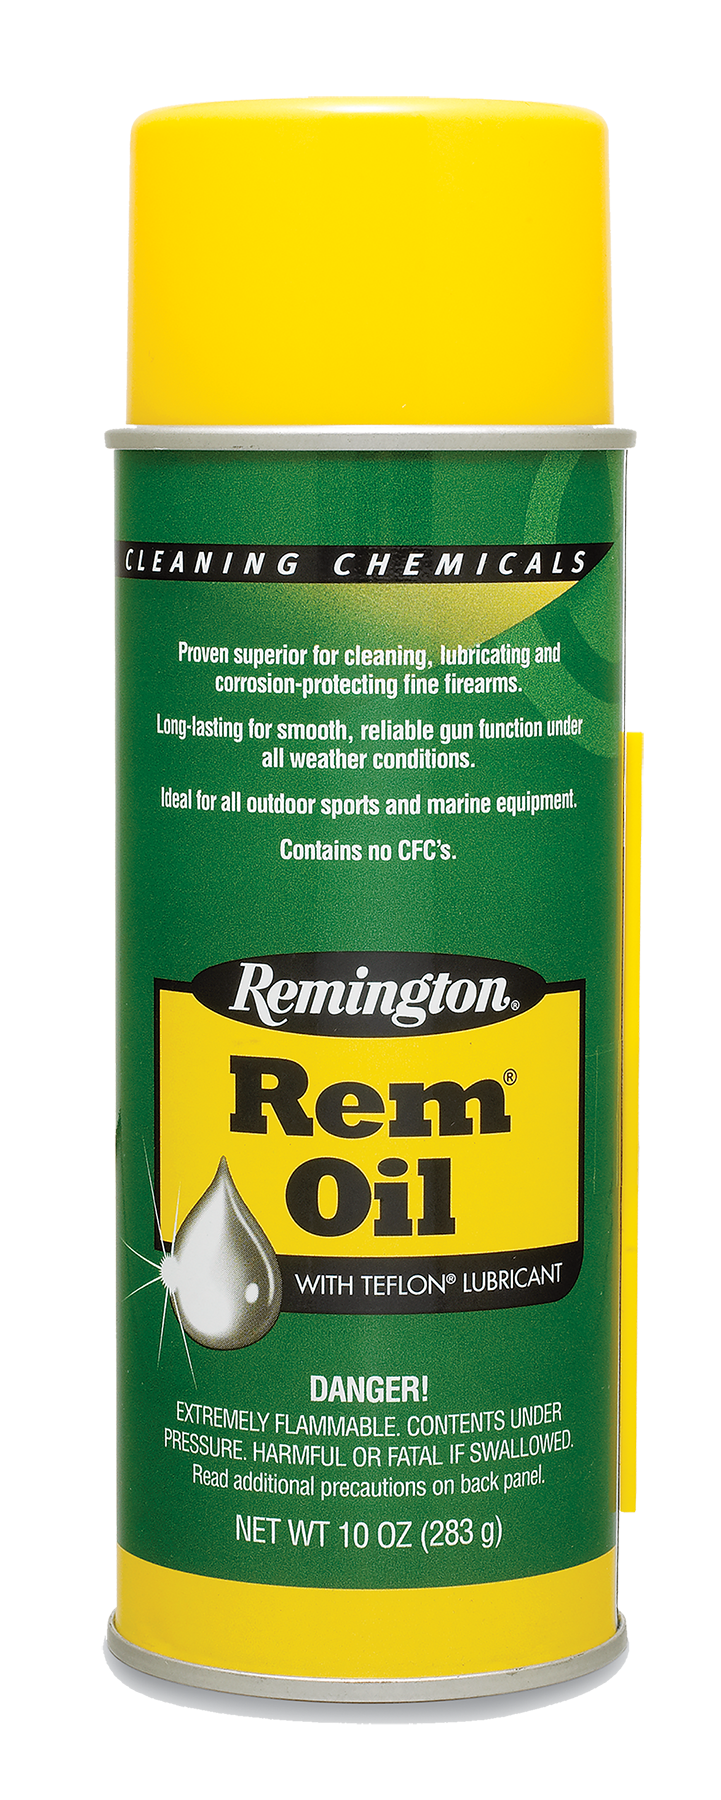 Remington Accessories 24027 Rem Oil Aerosol Lubricant 10 oz